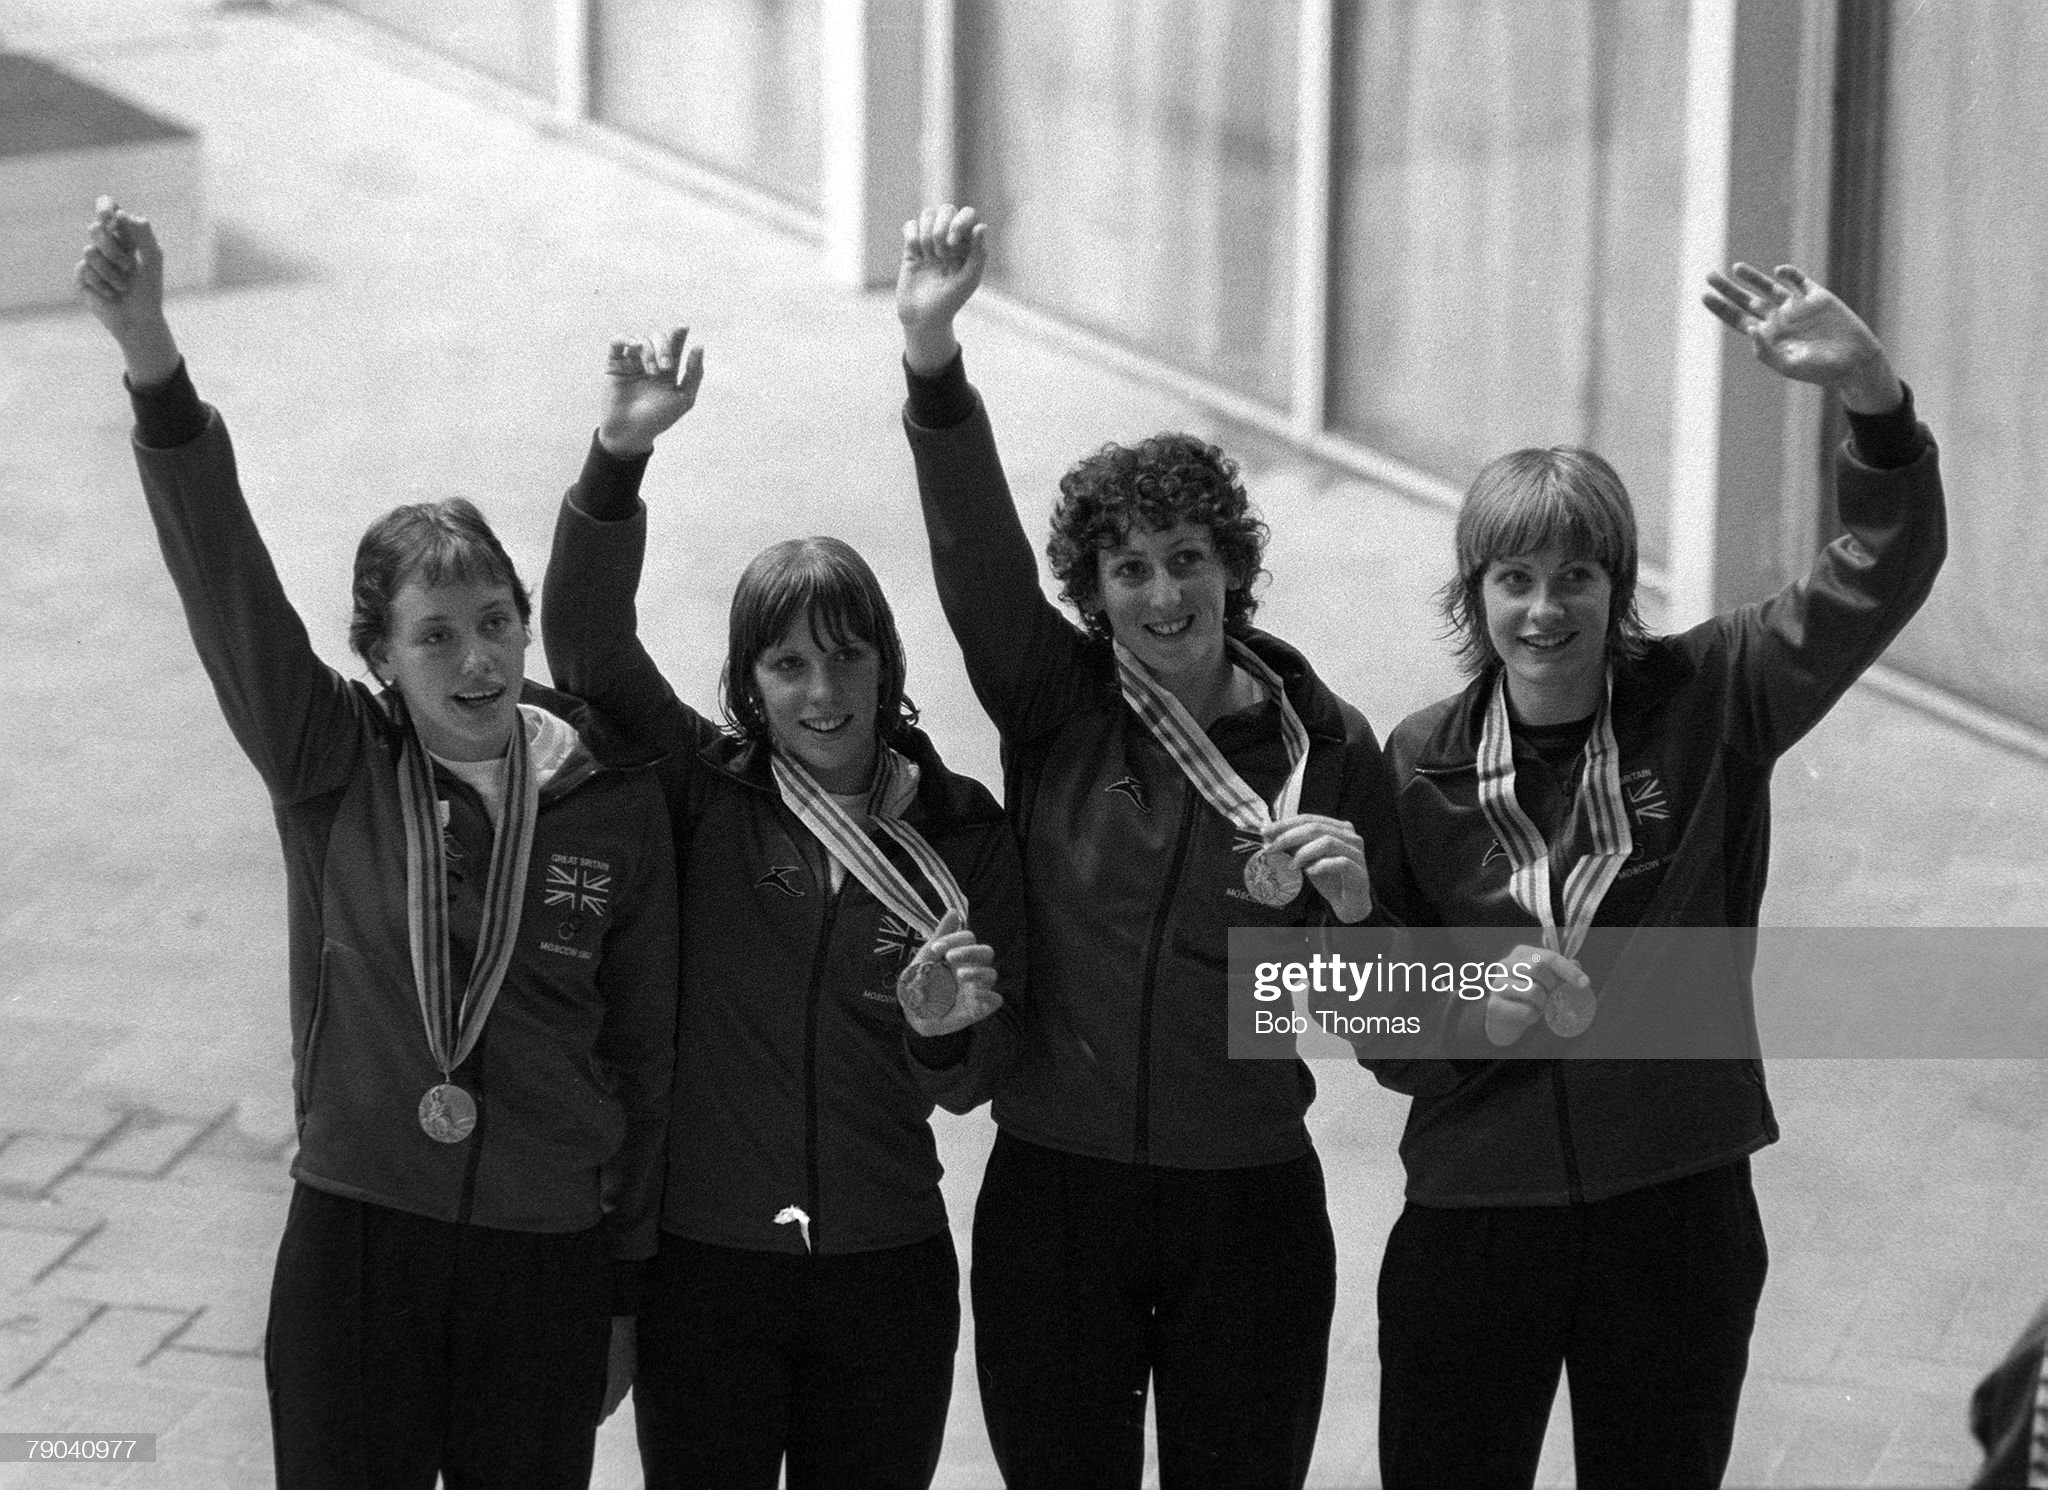 1980 Olympic Games. Moscow, Russia. 20th July 1980. Women's Swimming. 4 x 100 Metre Medley relay. The British team L-R: June Croft, Ann Osgerby, Margaret Kelly and Helen Jameson celebrate with their silver medals. : Fotografía de noticias